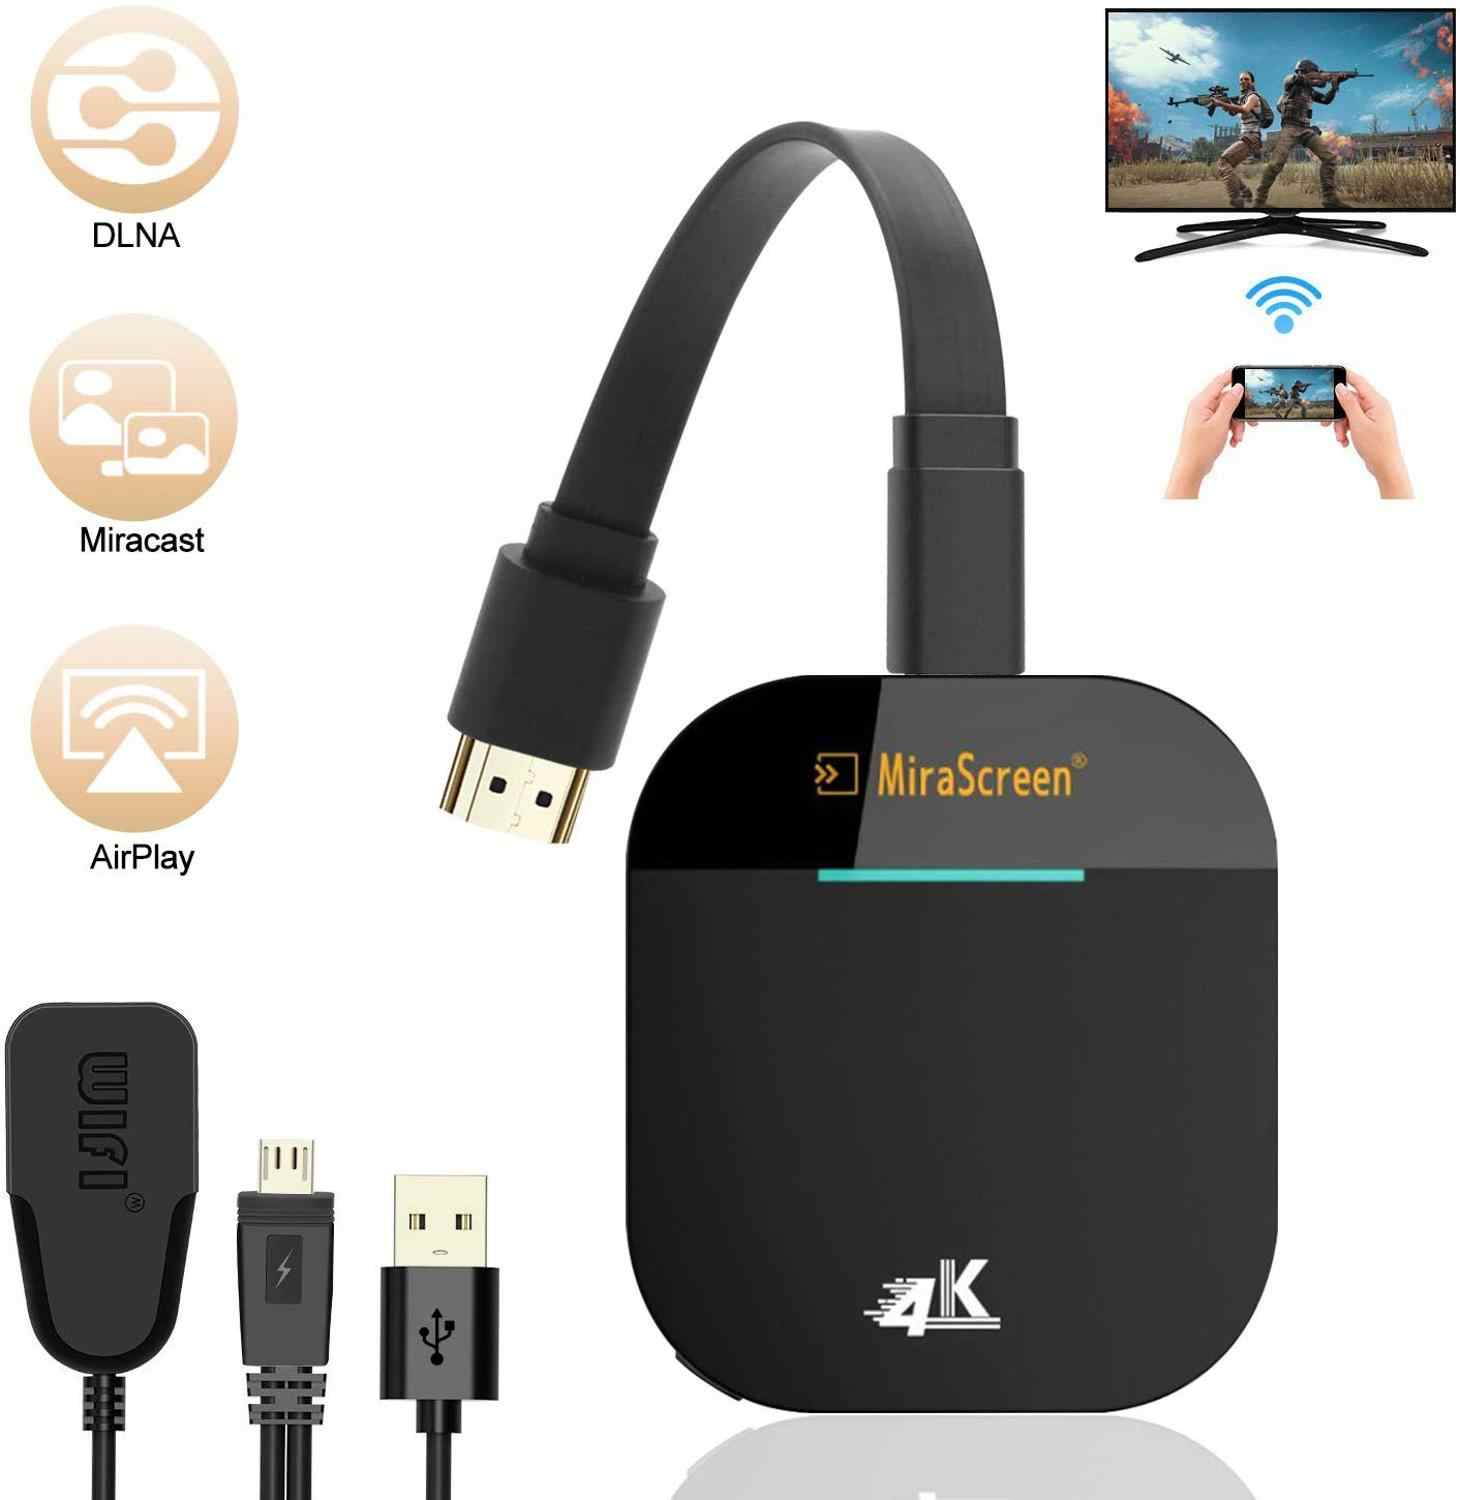 AMKLE Mirascreen G5 2,4G 5G 4K Wireless HDMI Dongle TV-stick Miracast Airplay Receiver Wifi Dongle spiegel bildschirm streamer cast